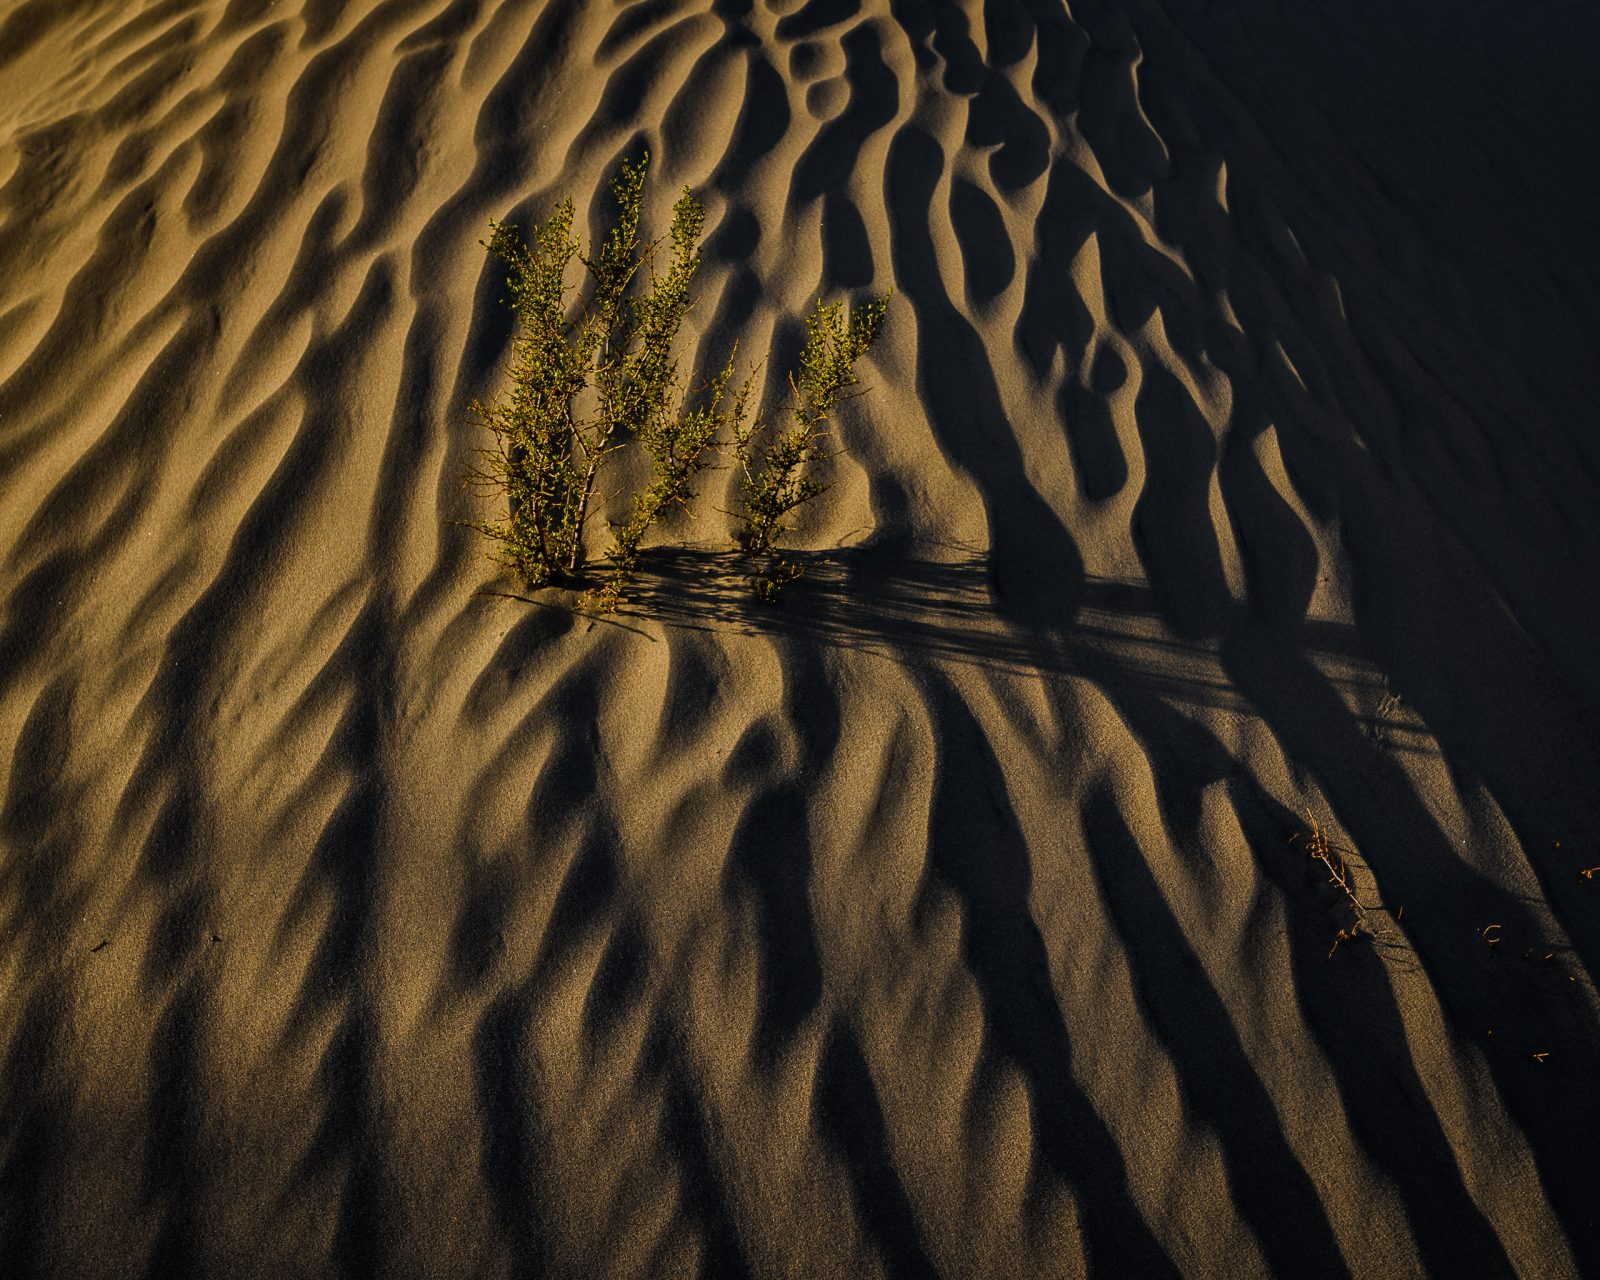 Creosote Bush in the Dunes